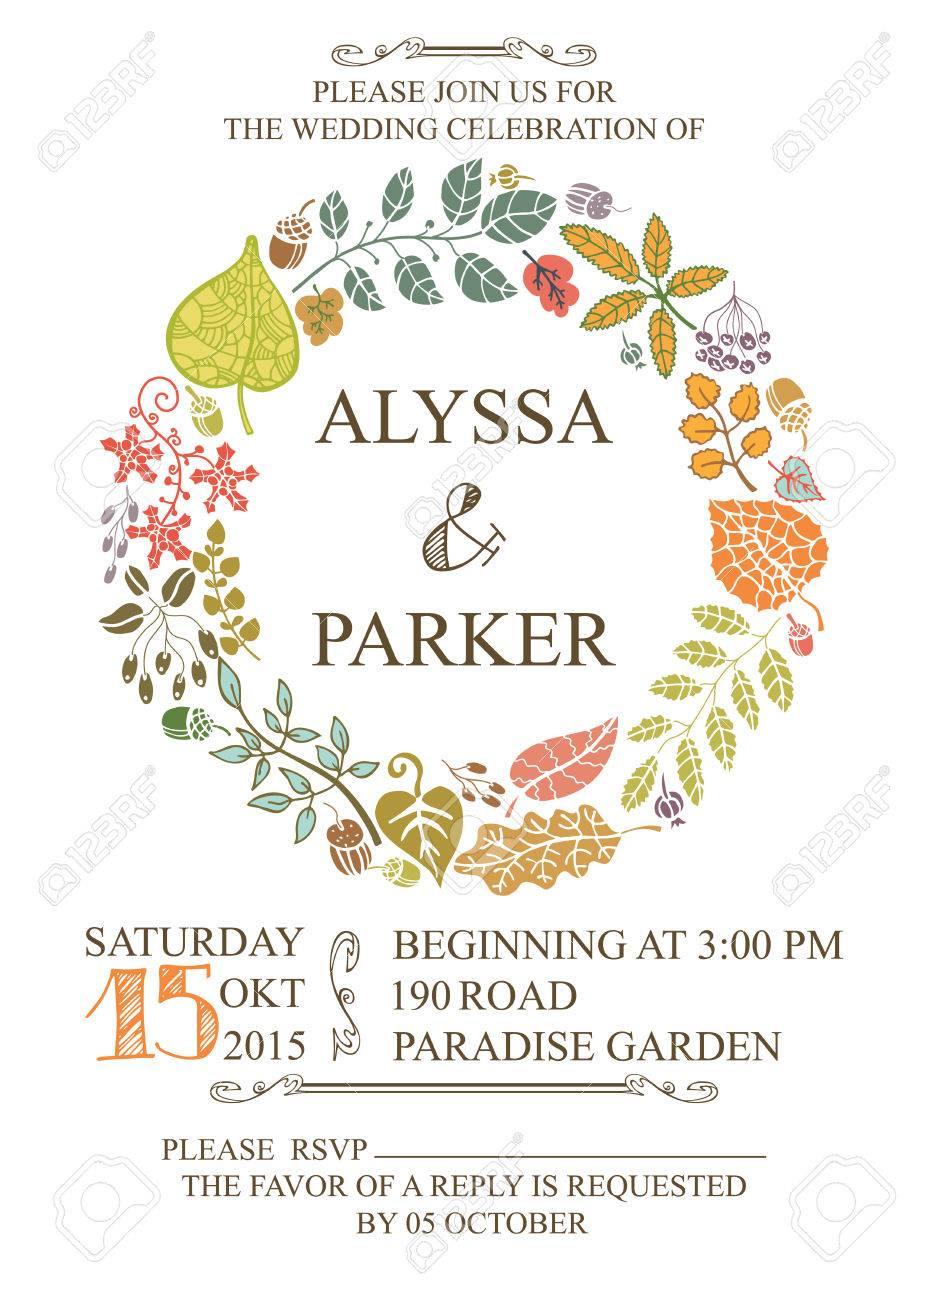 Retro Wedding Invitation With Autumn Leaves.Vector Design Template ...